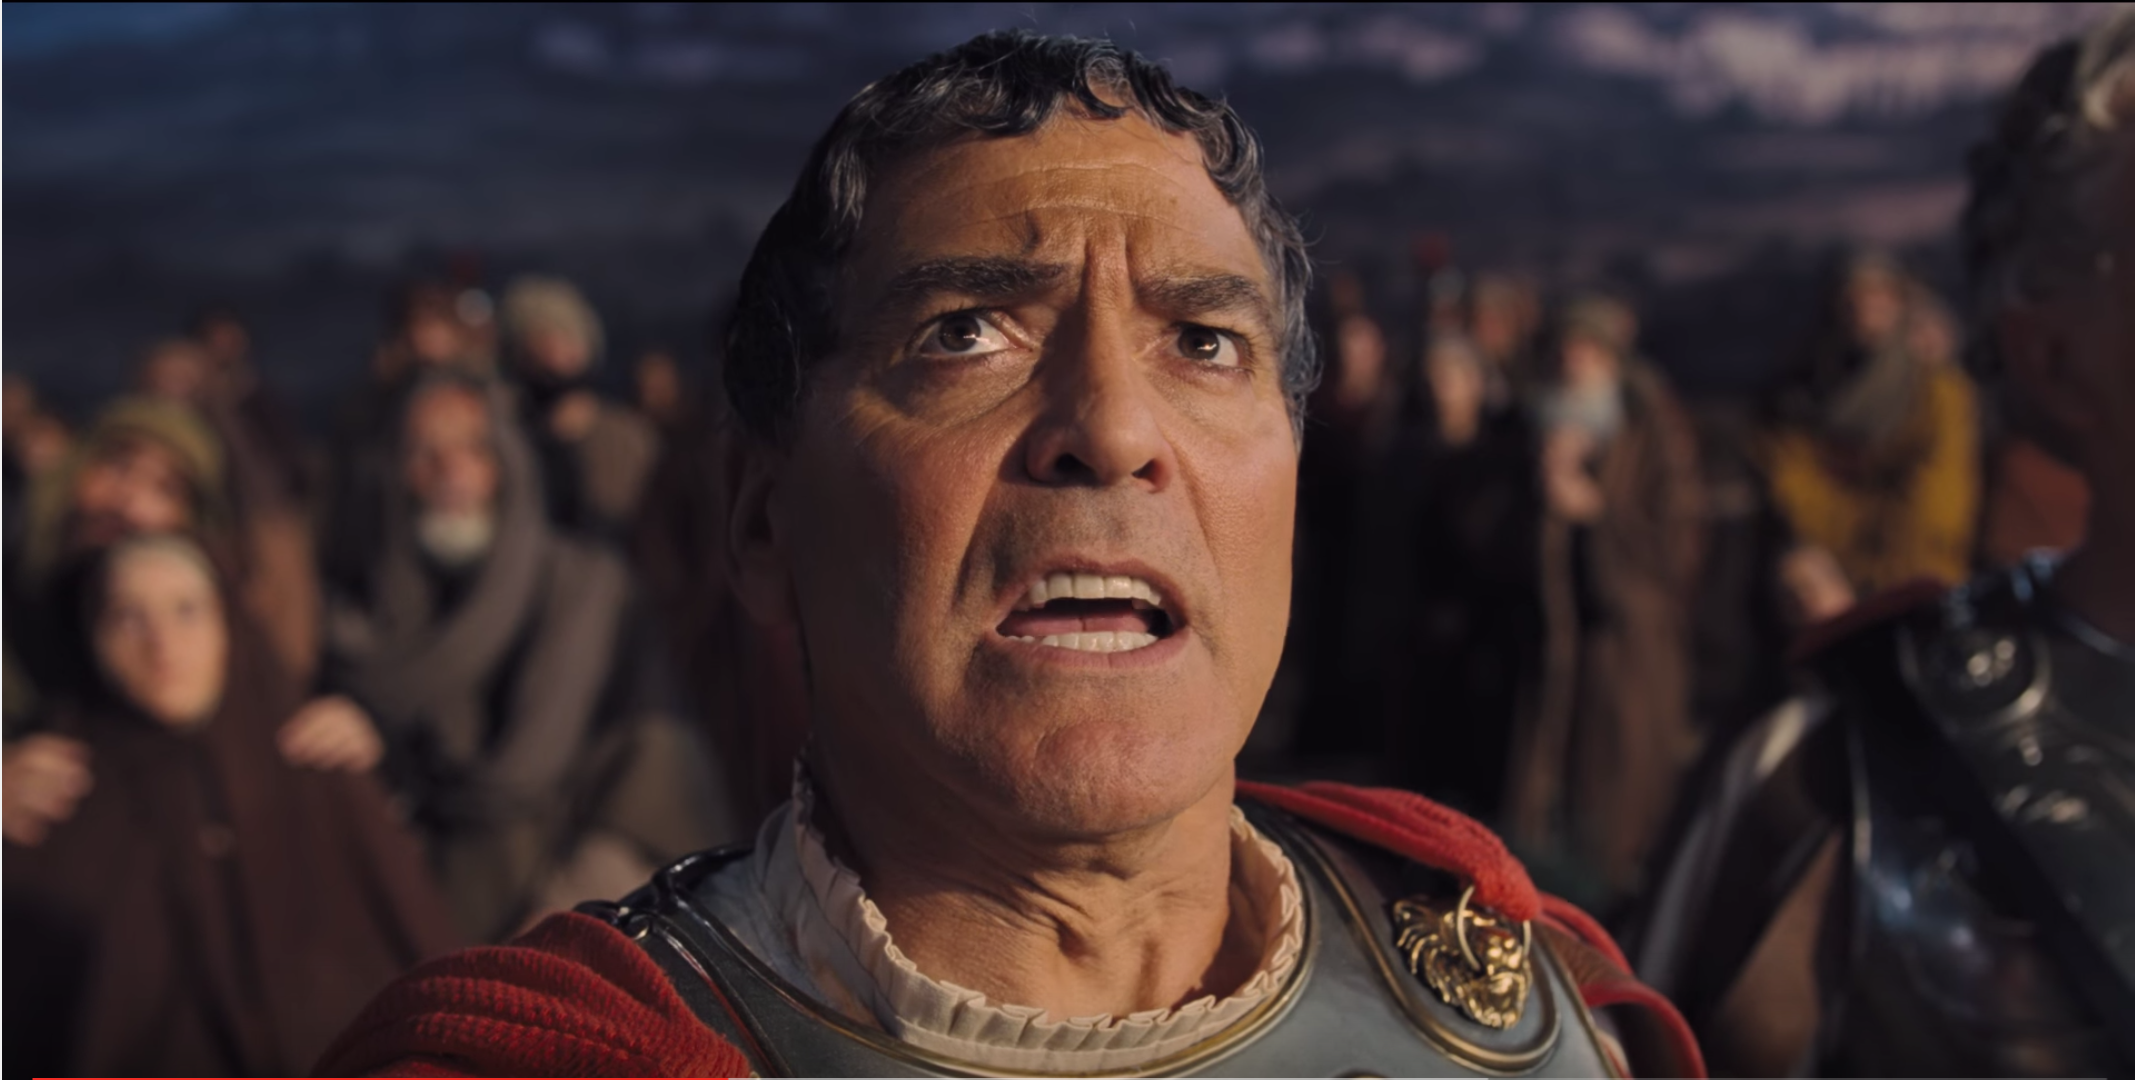 Look At The New Trailer 'Hail, Caesar!' With Josh Brolin, George Clooney, Jonah Hill, Scarlett Johansson, Tilda Swinton and Channing Tatum